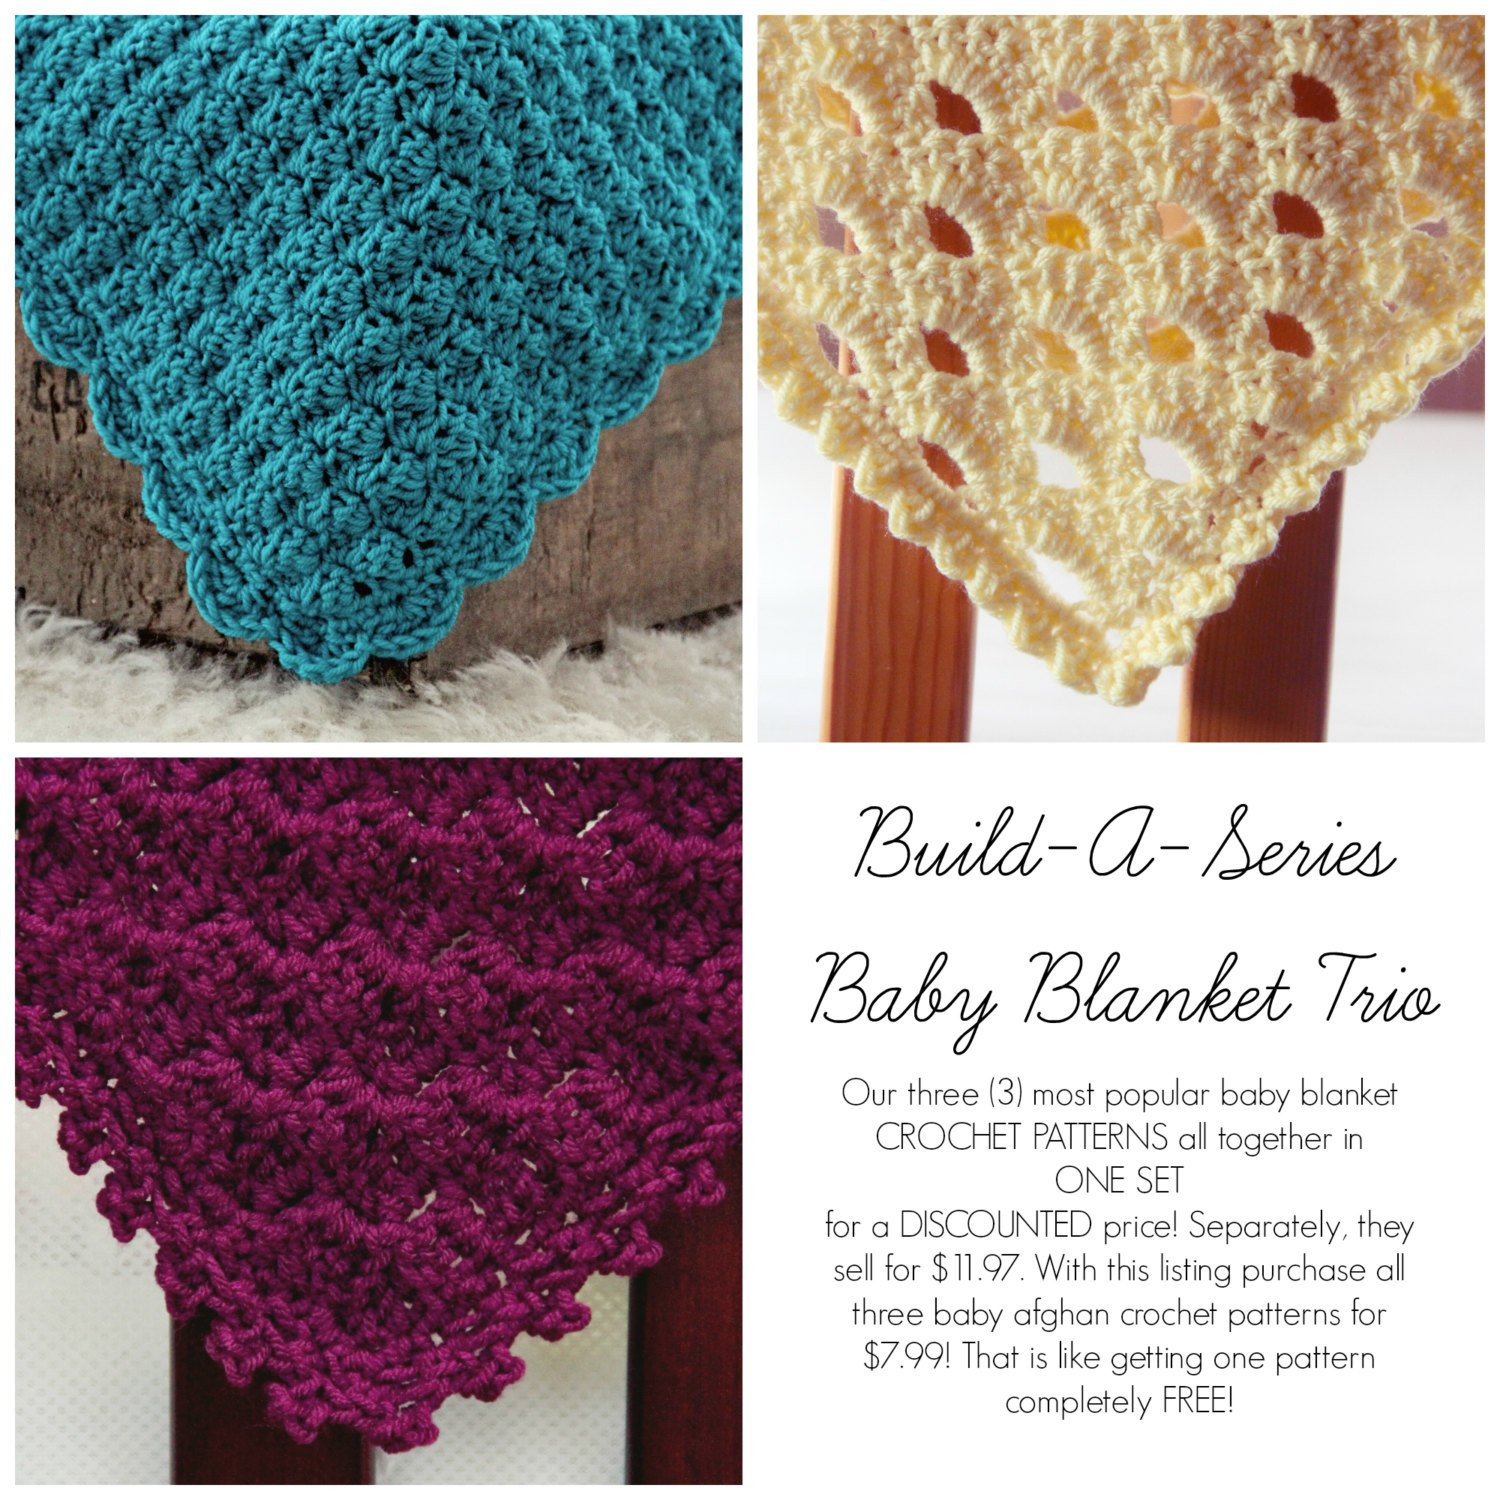 Crochet Baby Blanket for Sale Awesome Sale Easy Crochet Patterns Baby Blanket Trio 3 In One Afghan Of Attractive 48 Photos Crochet Baby Blanket for Sale